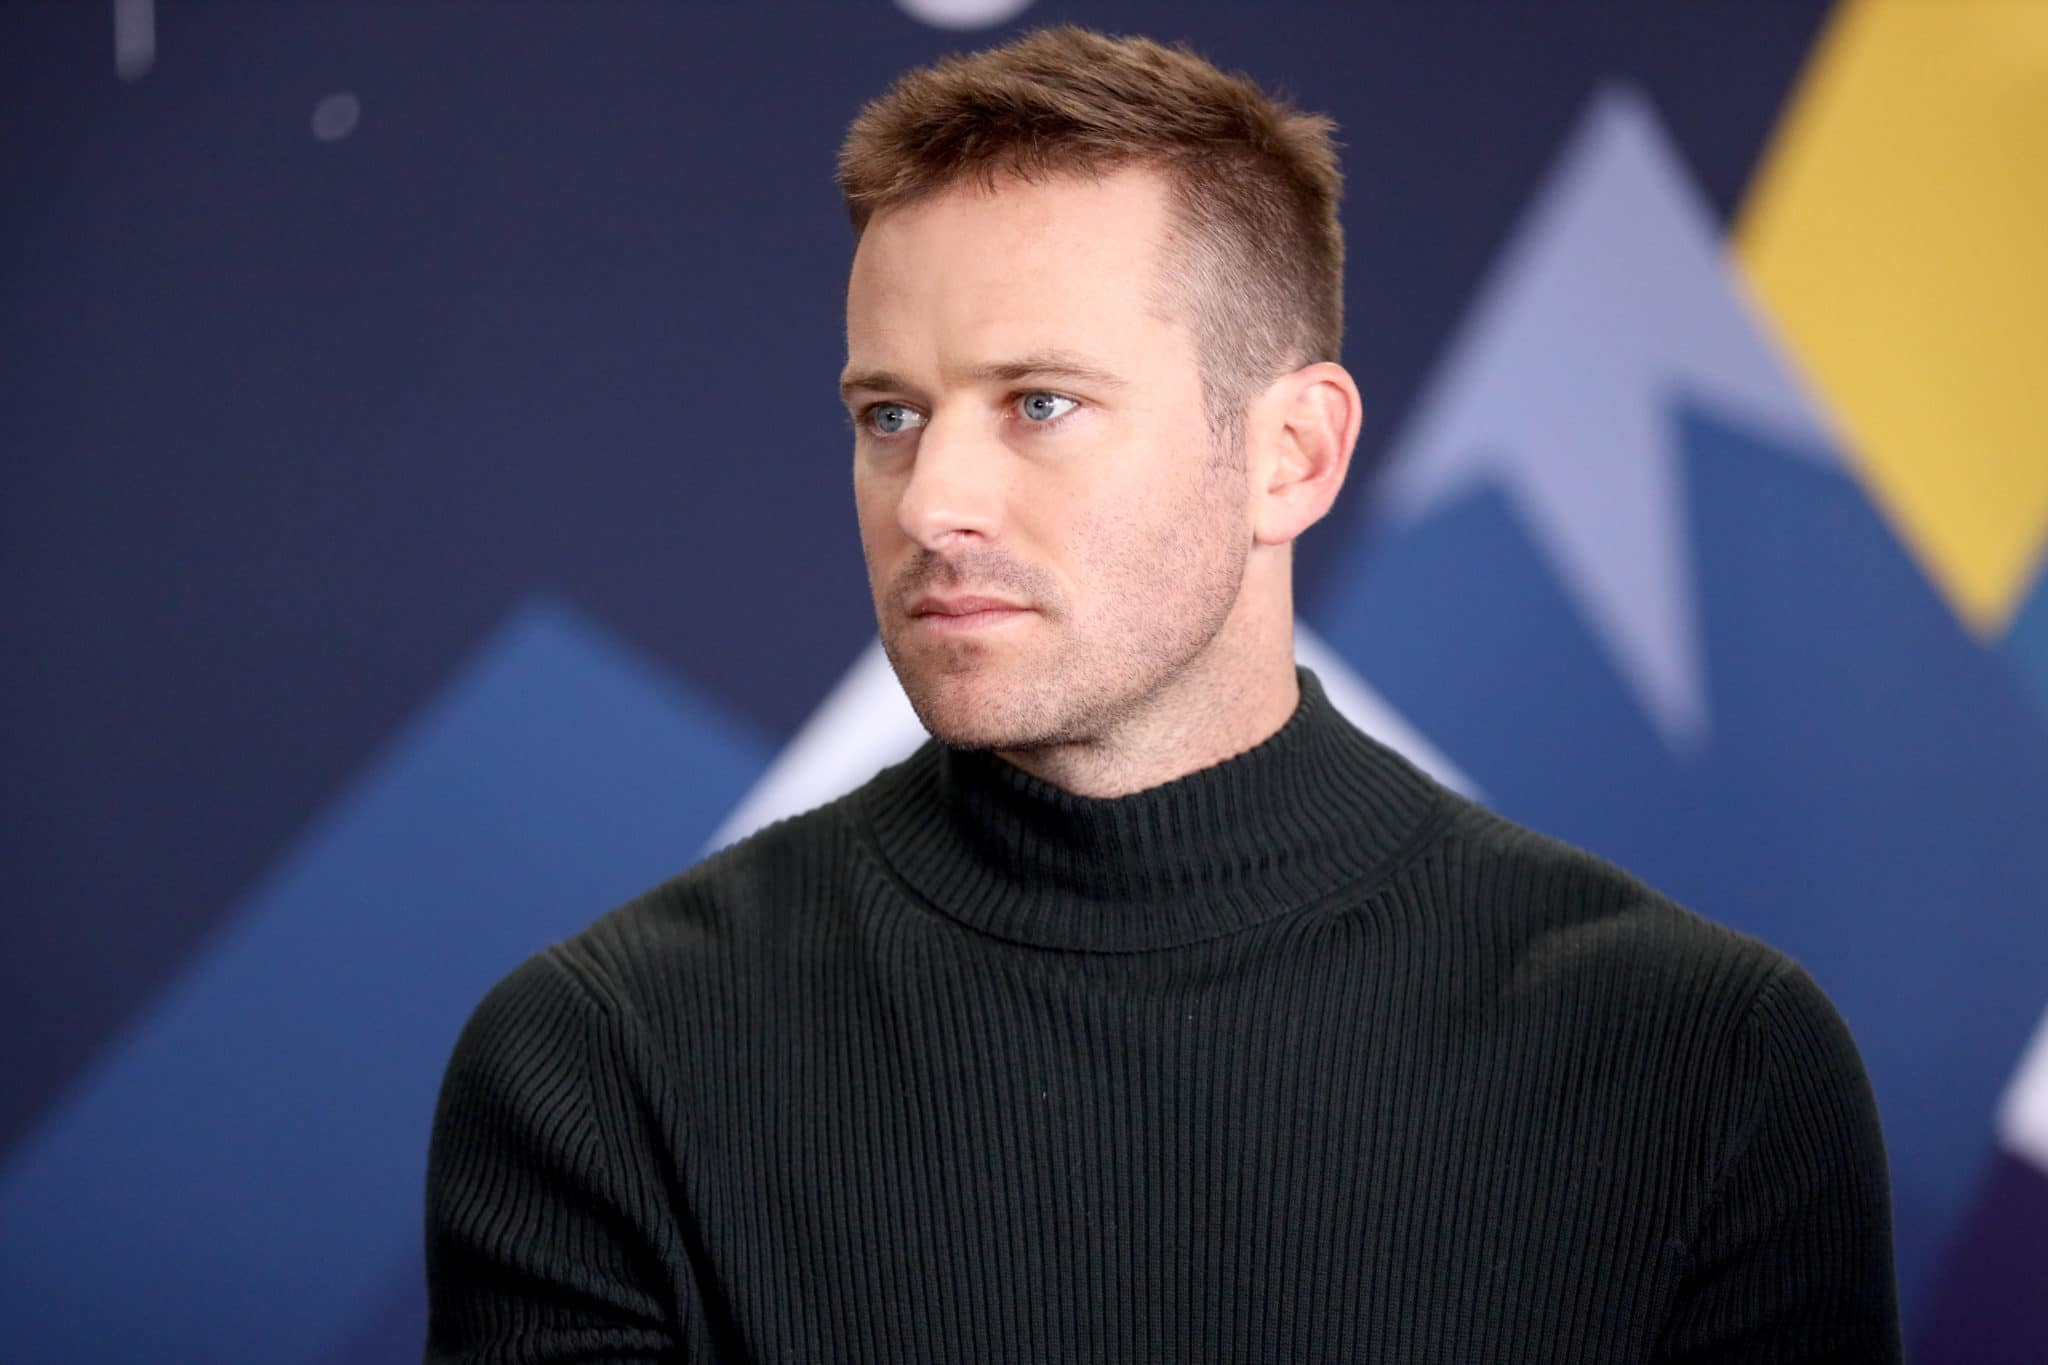 Armie Hammer in a black turtleneck looking to the right